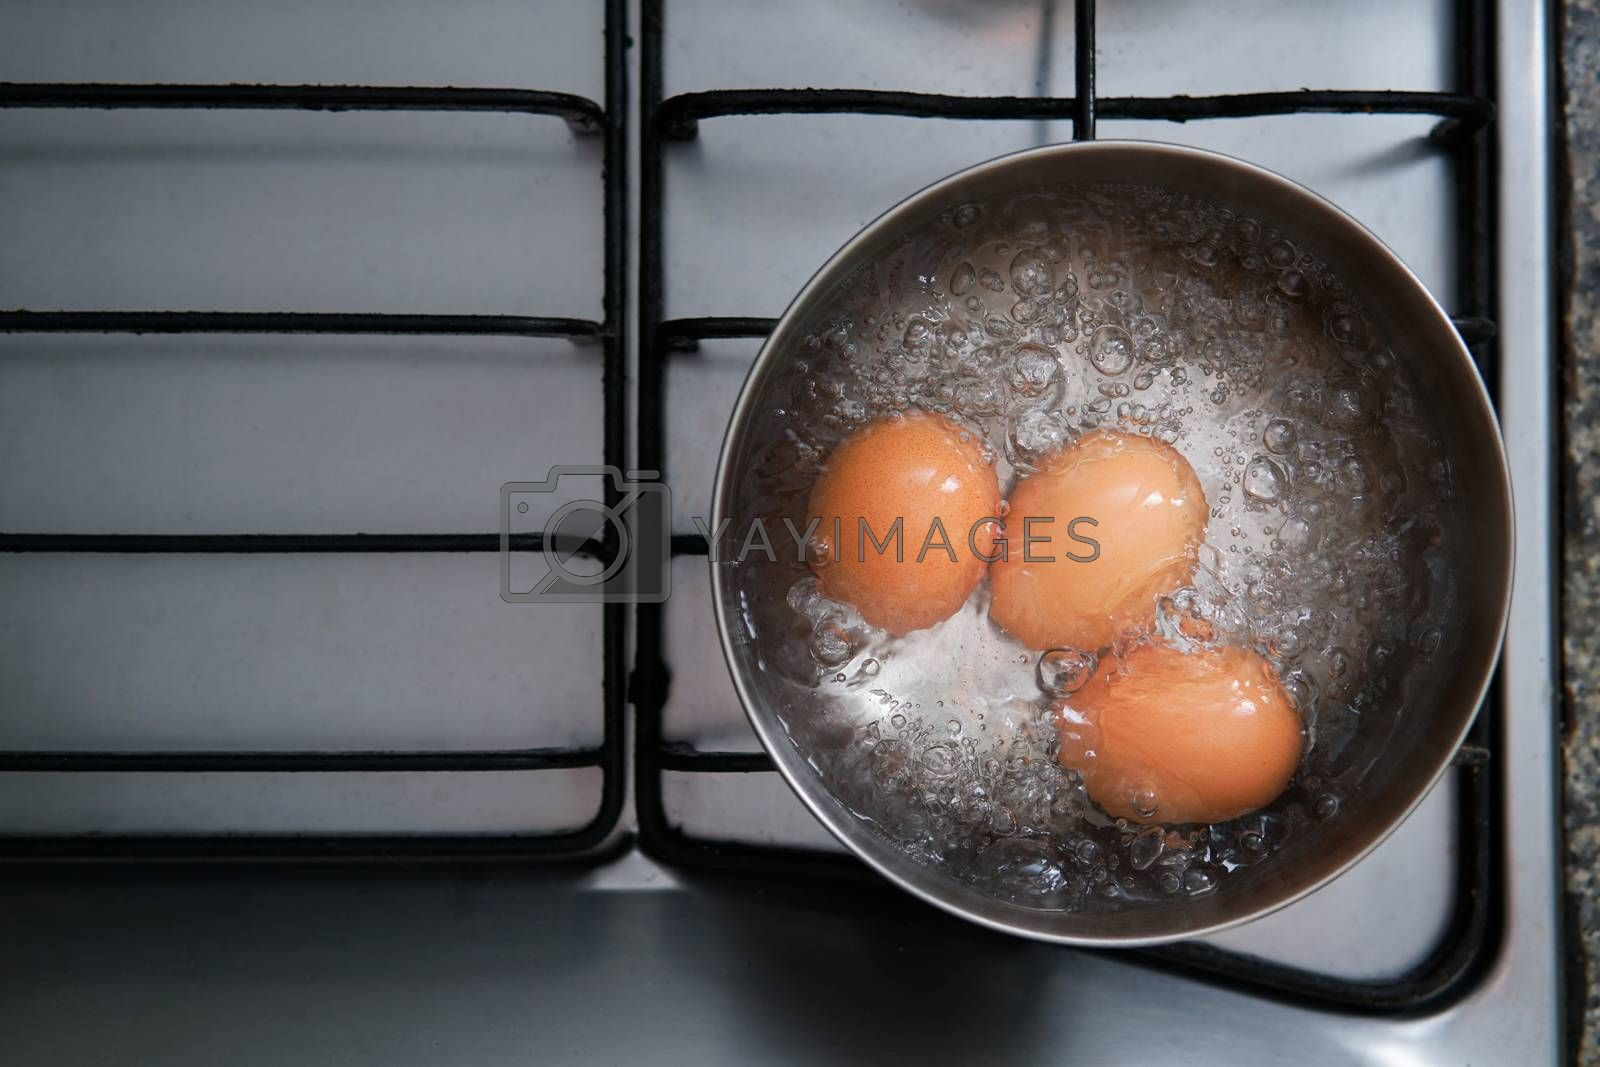 Royalty free image of eggs in boiling water by antpkr